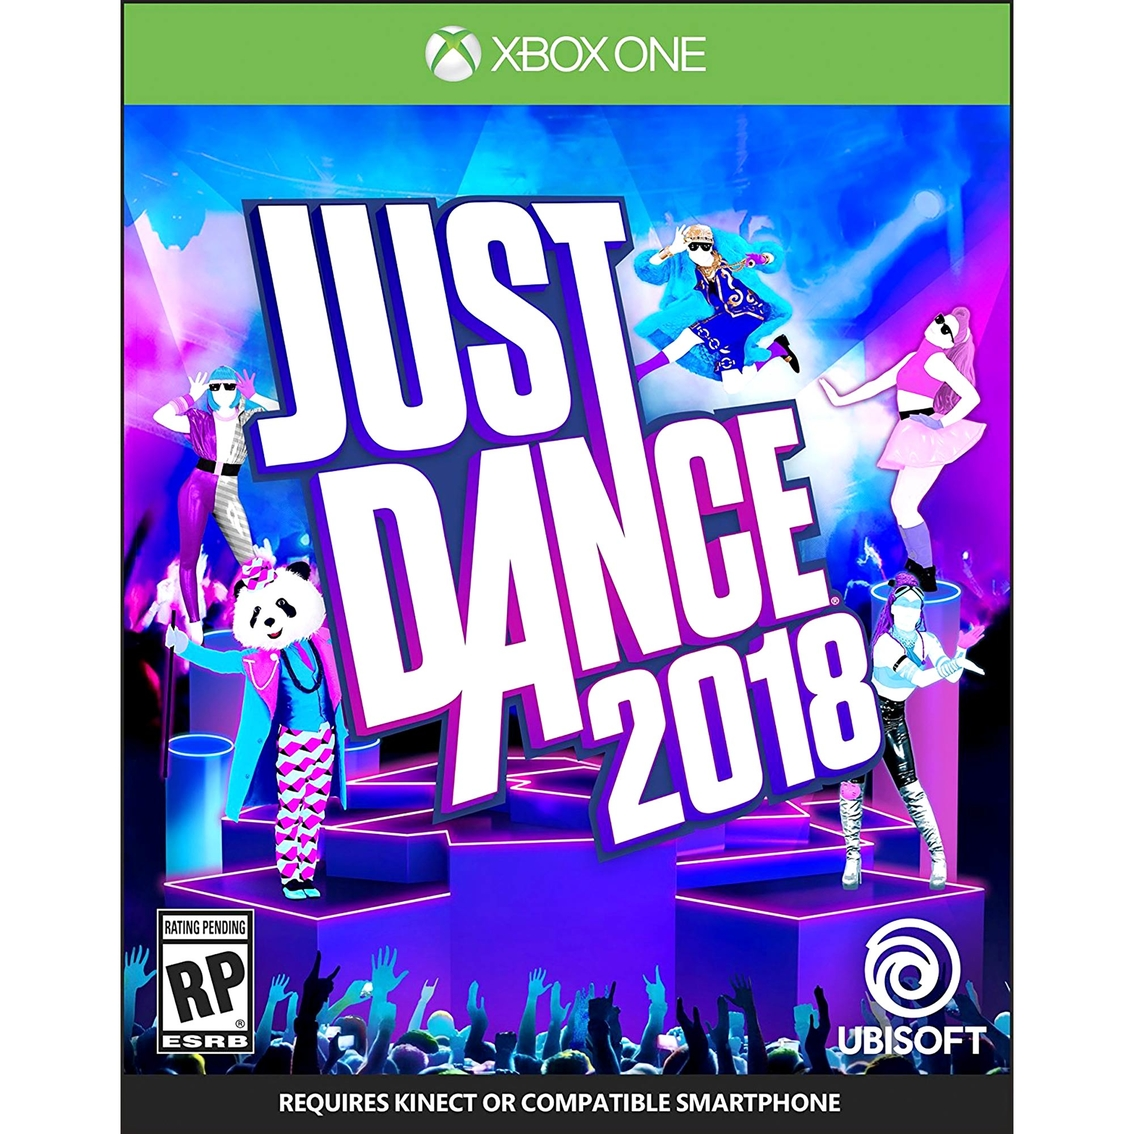 Xbox 1 Games 2018 : Just dance xbox one games electronics